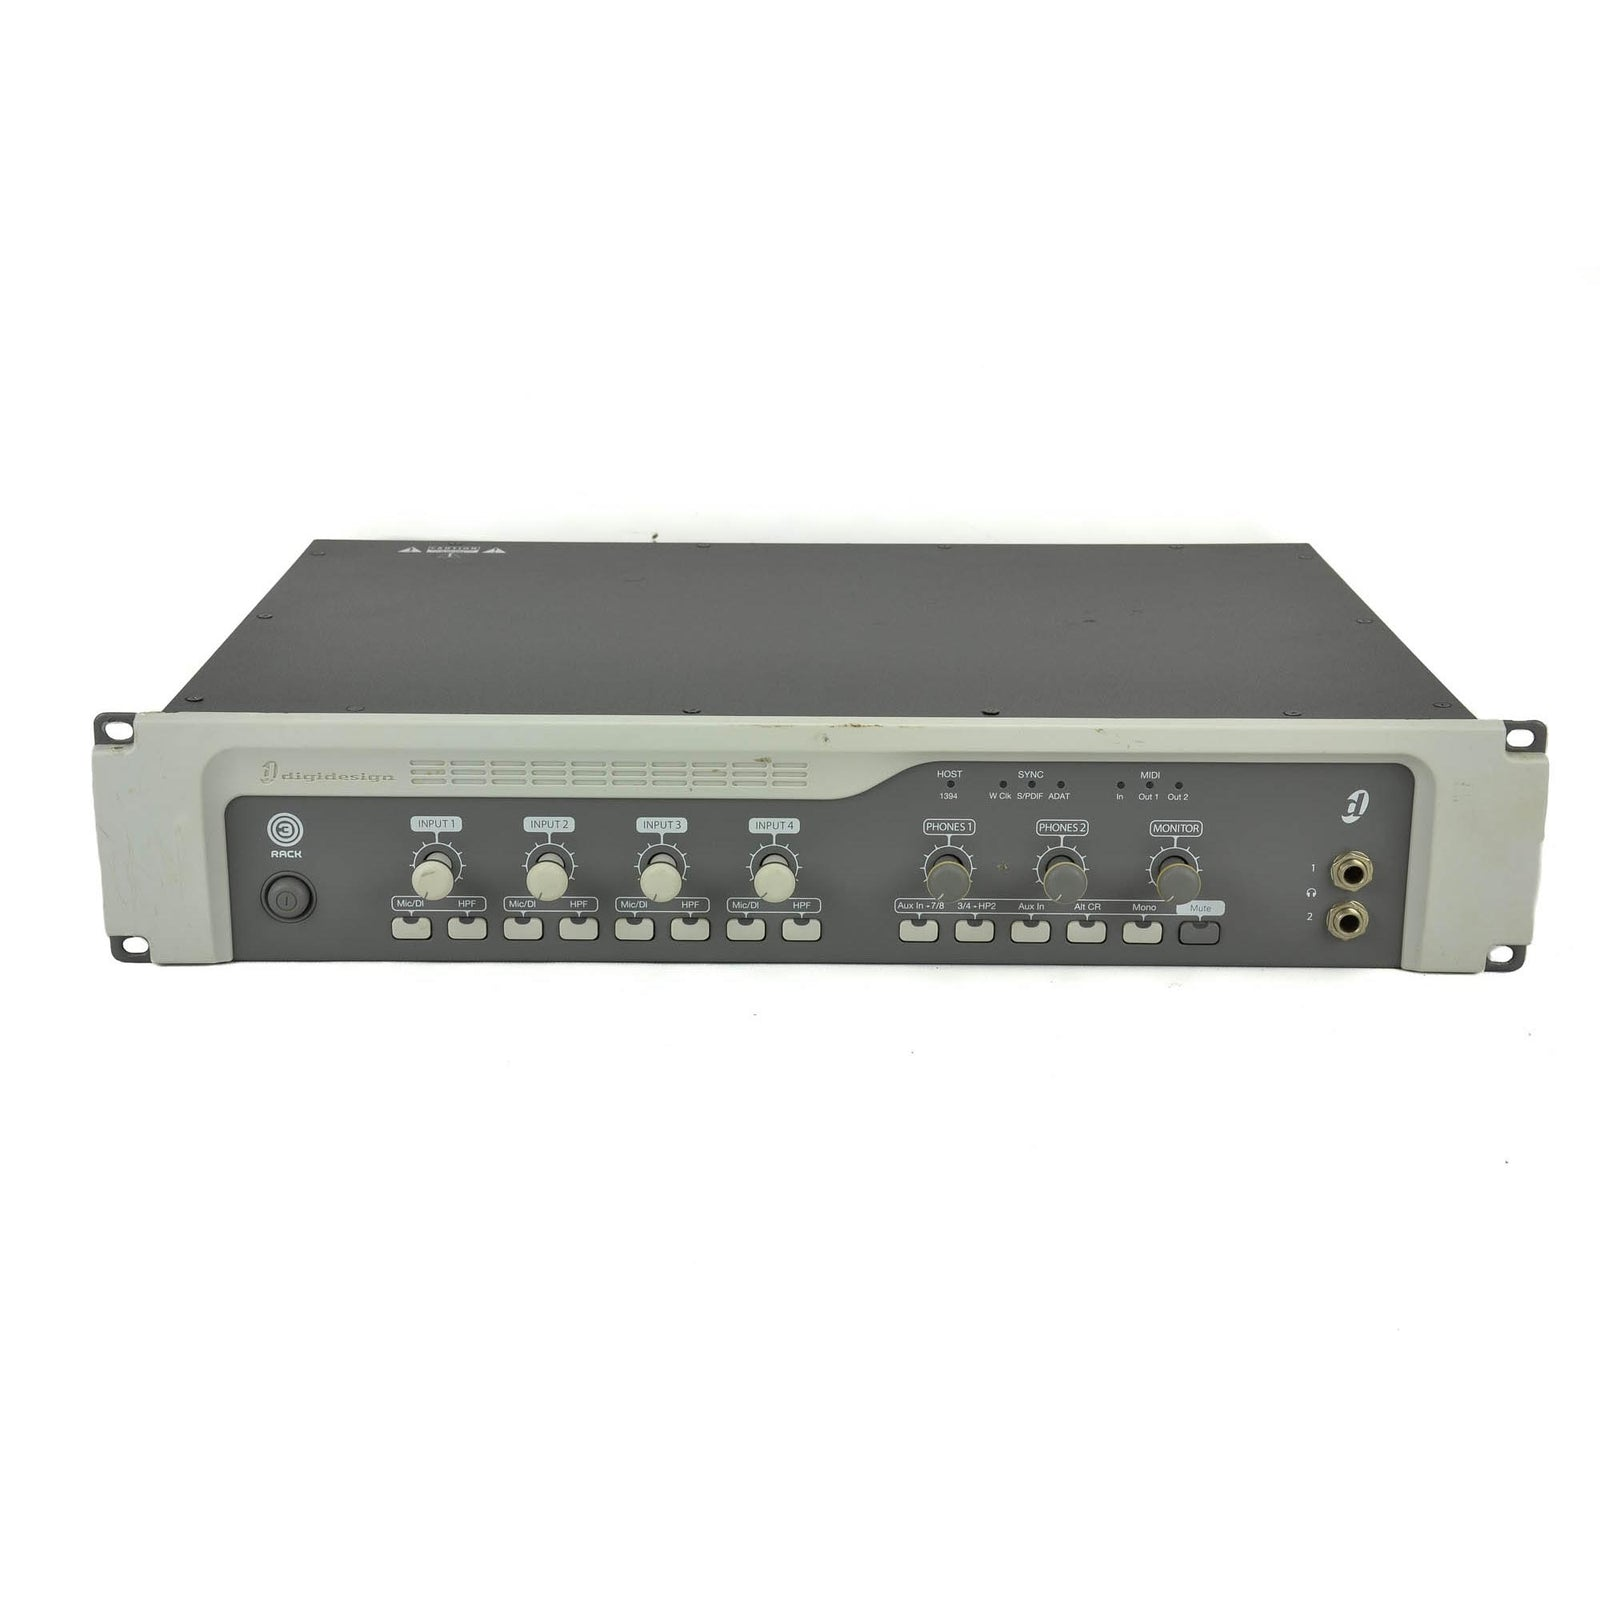 Digidesign Digi003 Rack - I/O Only - Used